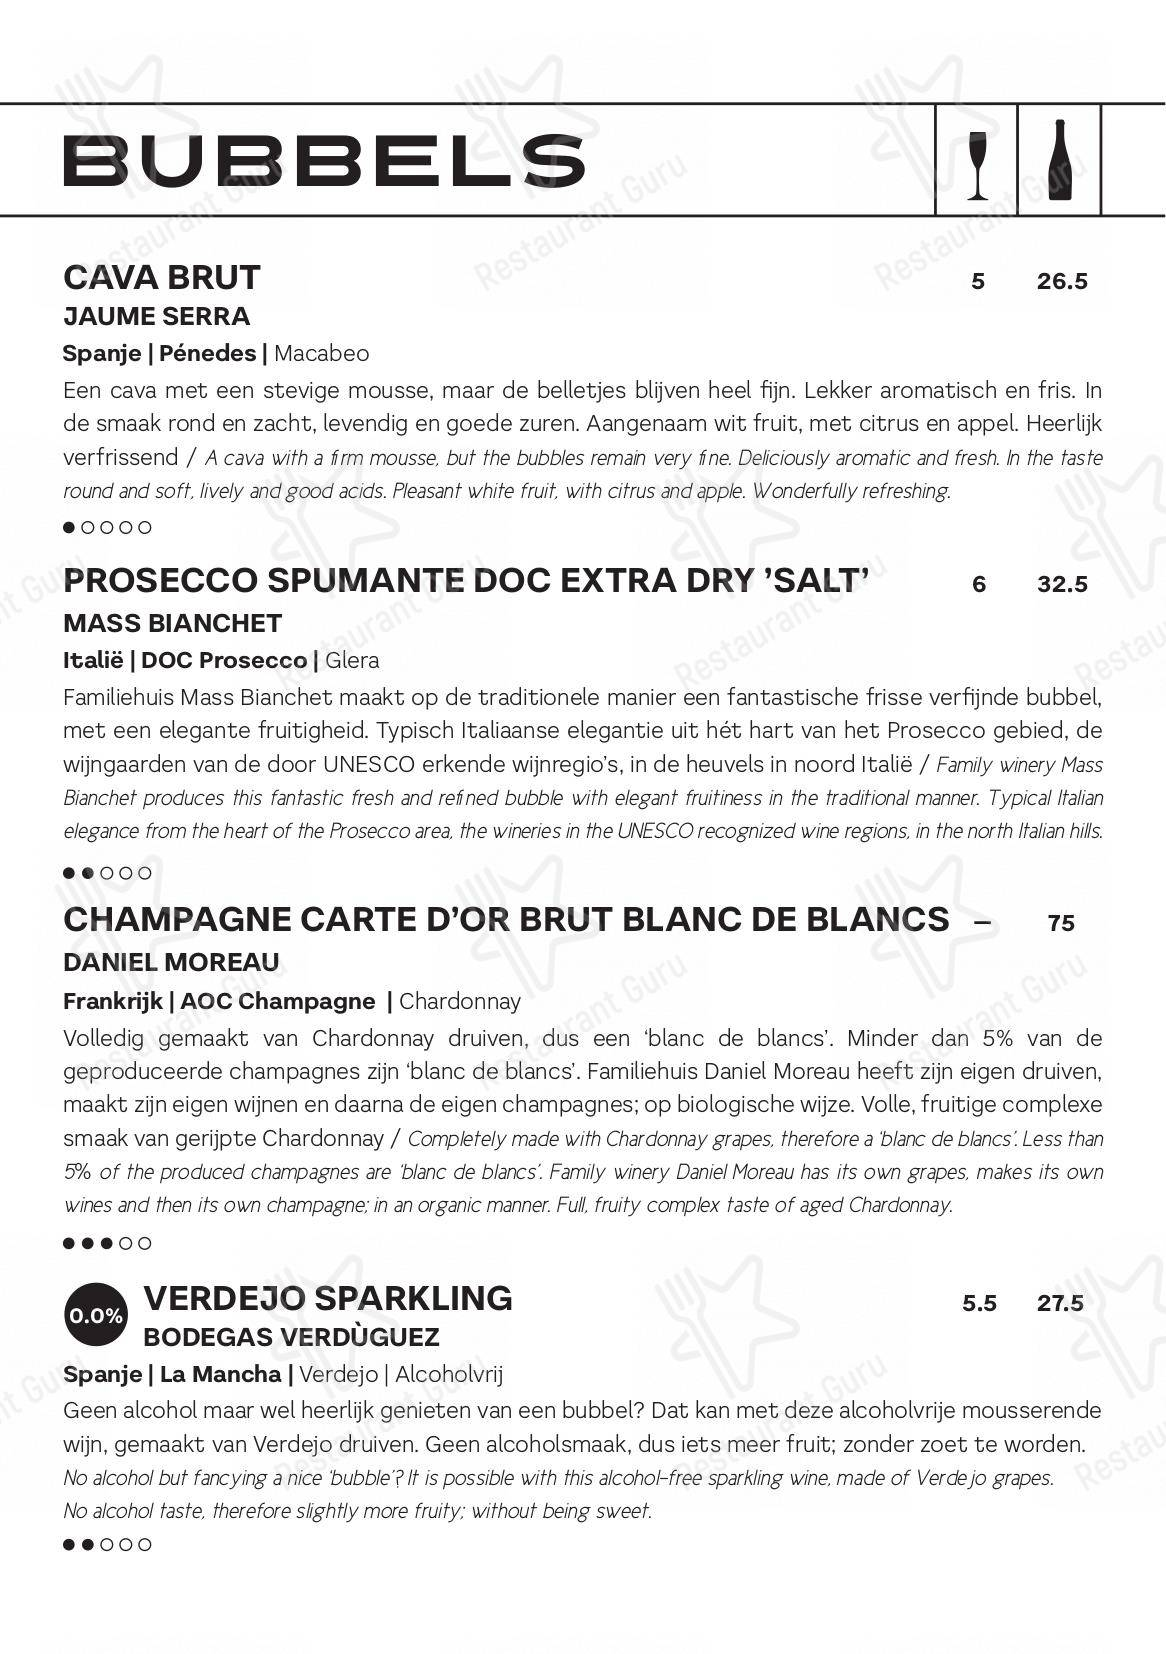 Check out the menu for Ubica